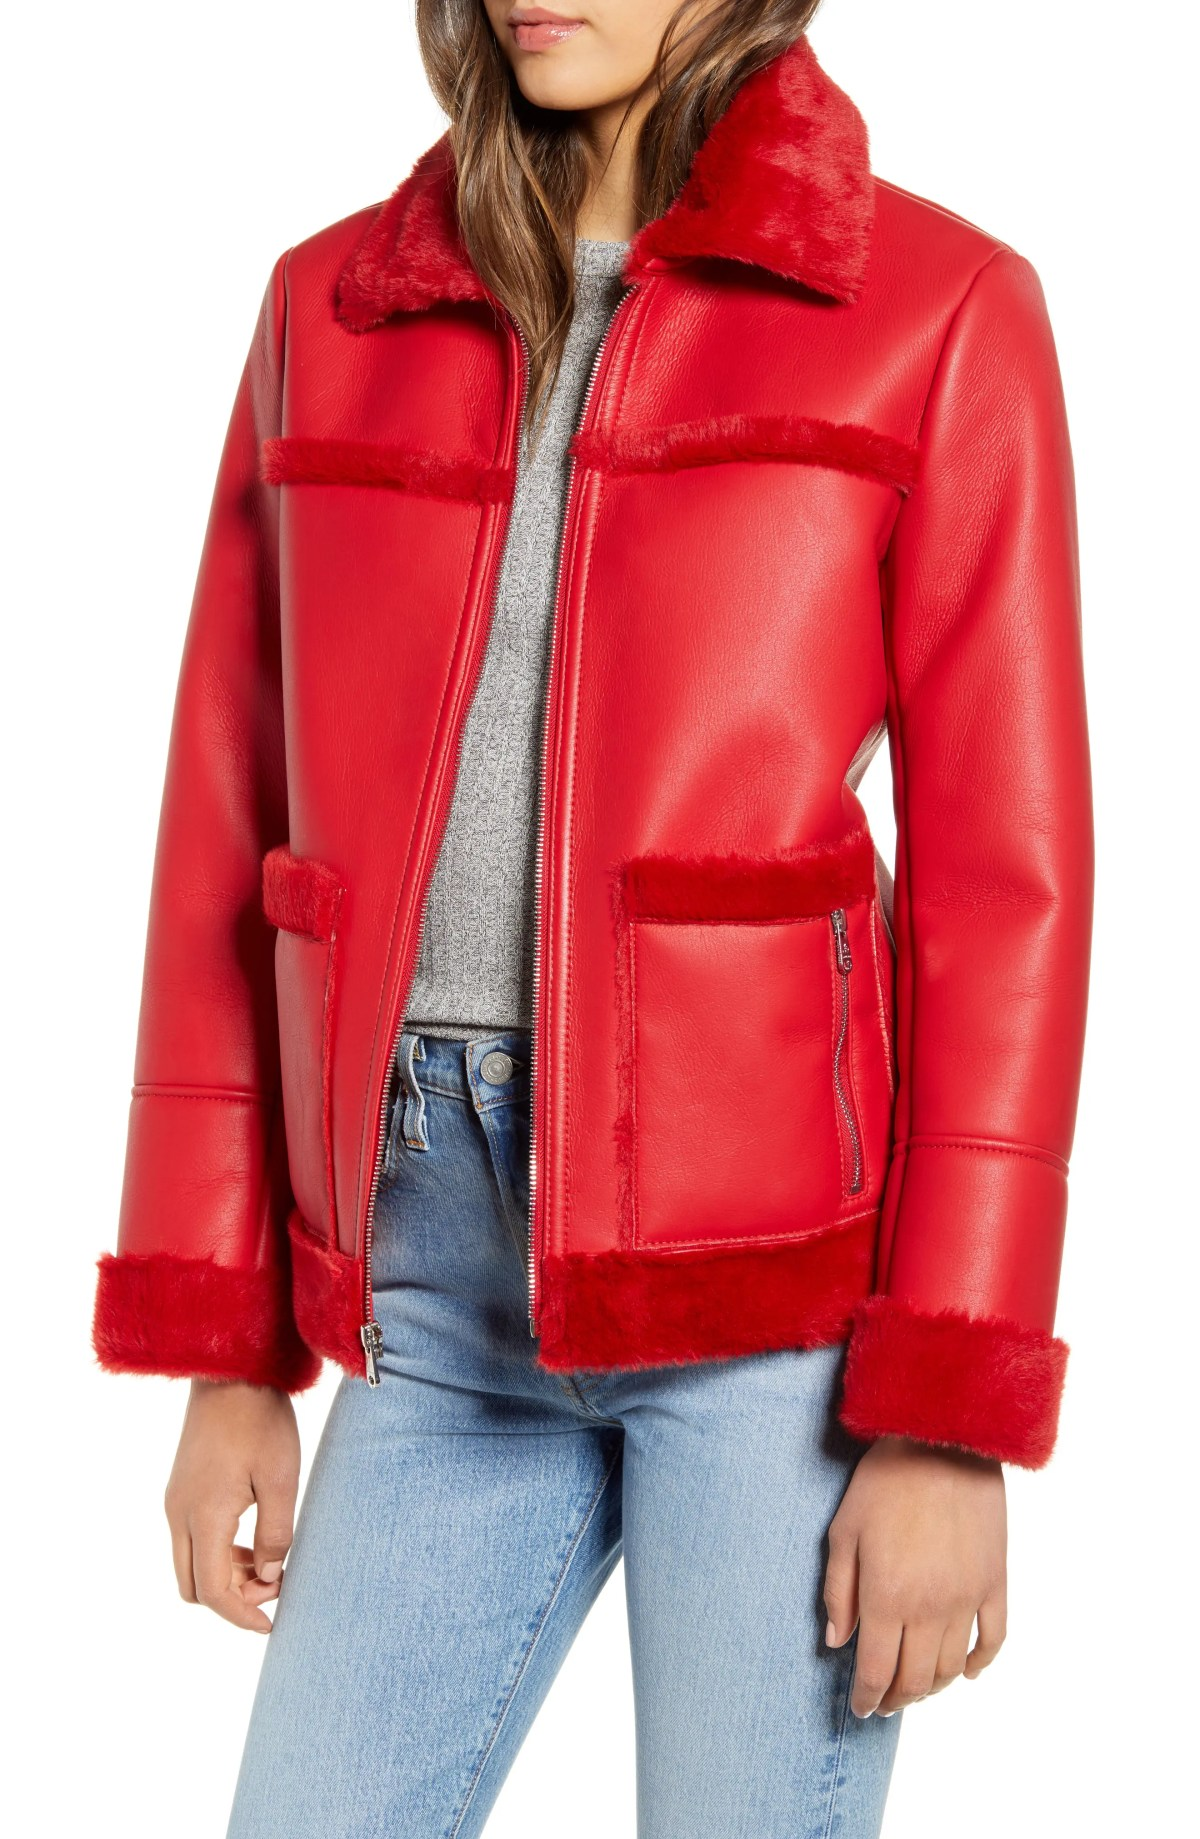 SAM EDELMAN Faux Fur Trim Faux Leather Jacket, Main, color, RED